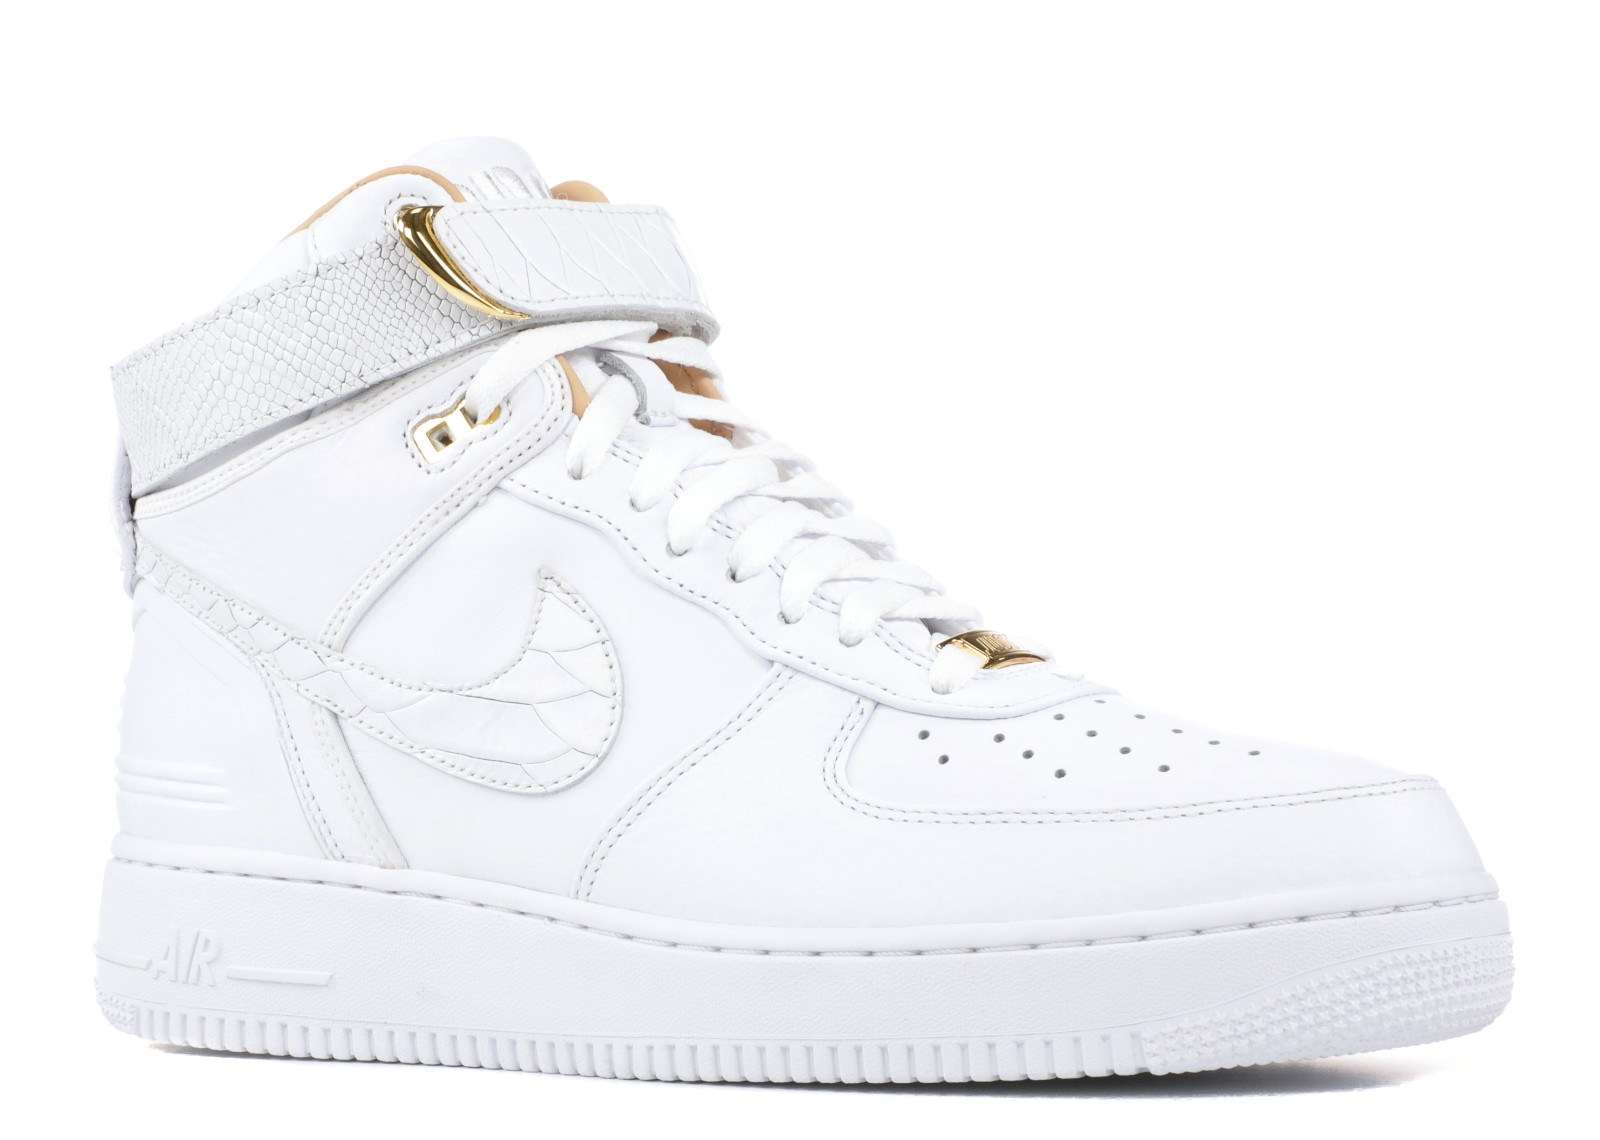 buy popular c05a6 8d77d Nike - Men - Air Force 1 Hi Just Don  Just Don  - Ao1074-100 - Size 5